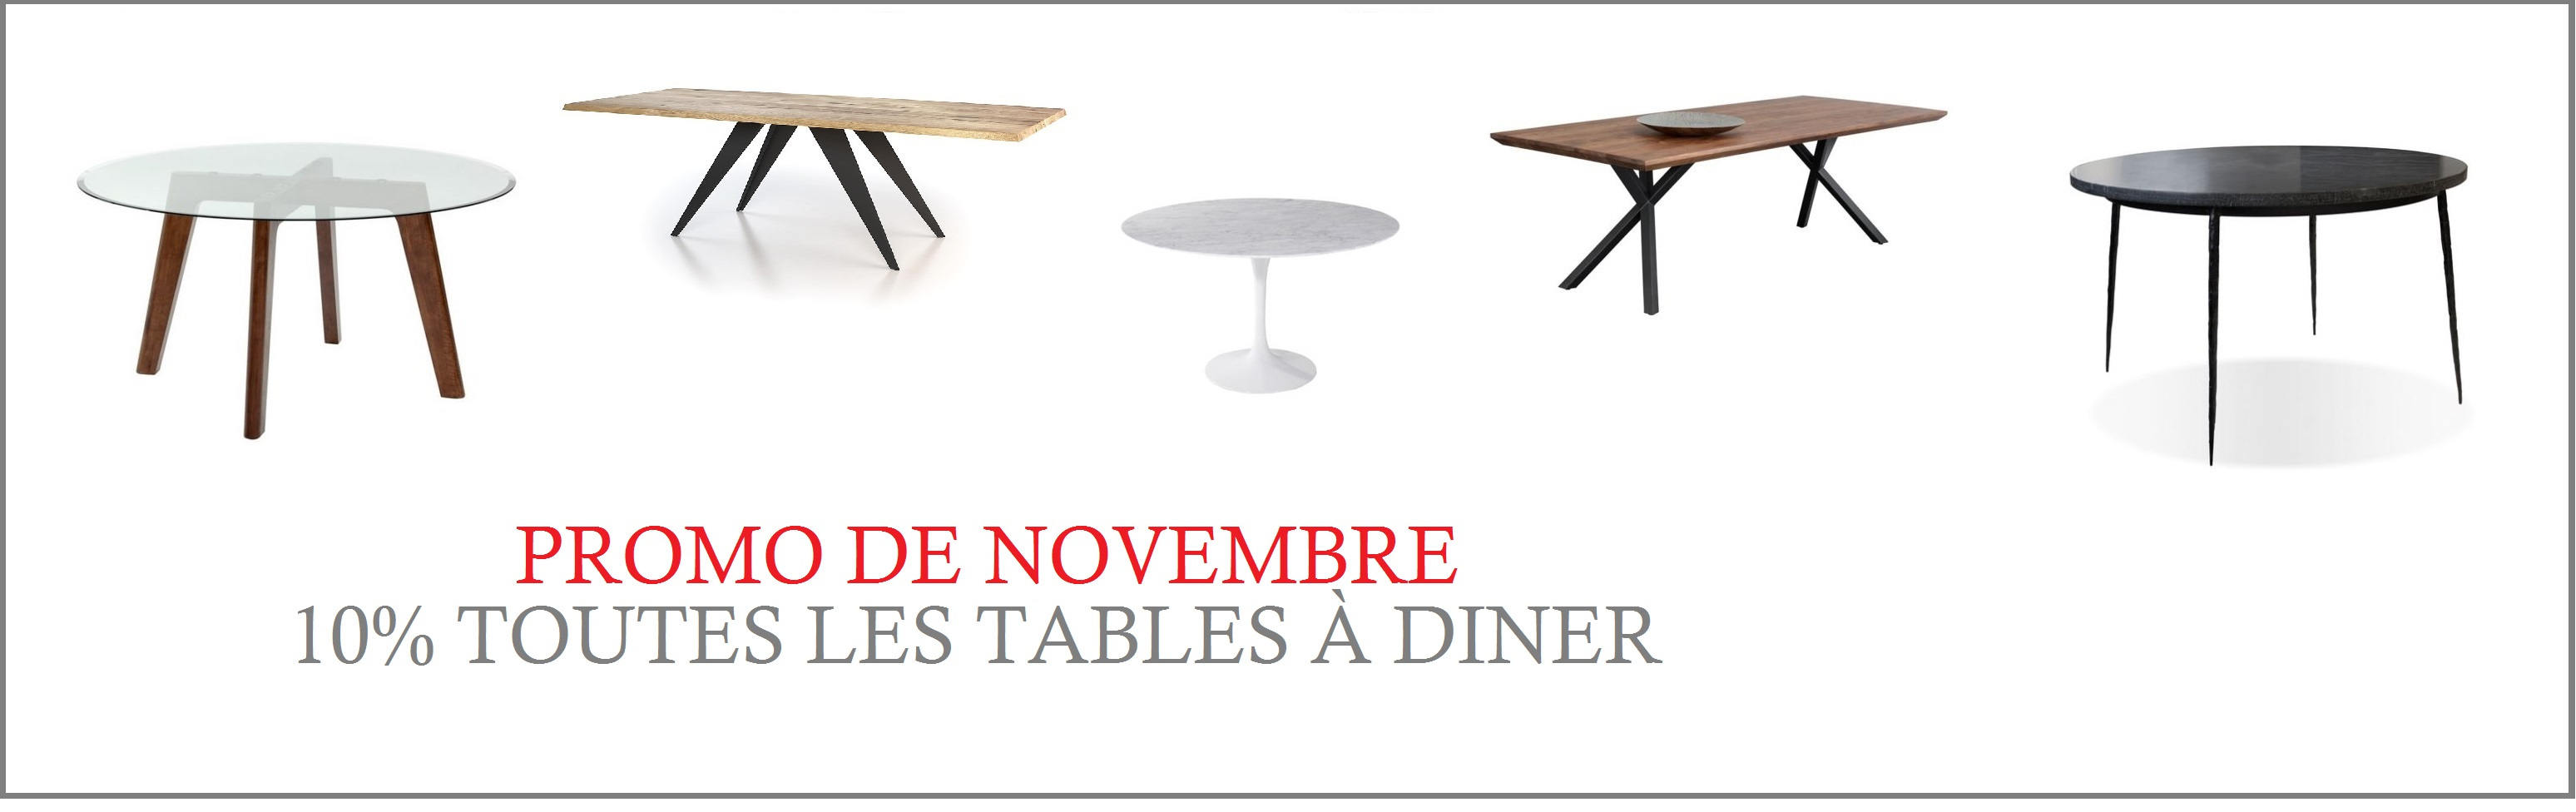 dining-TABLE-event-OCTOBER_french